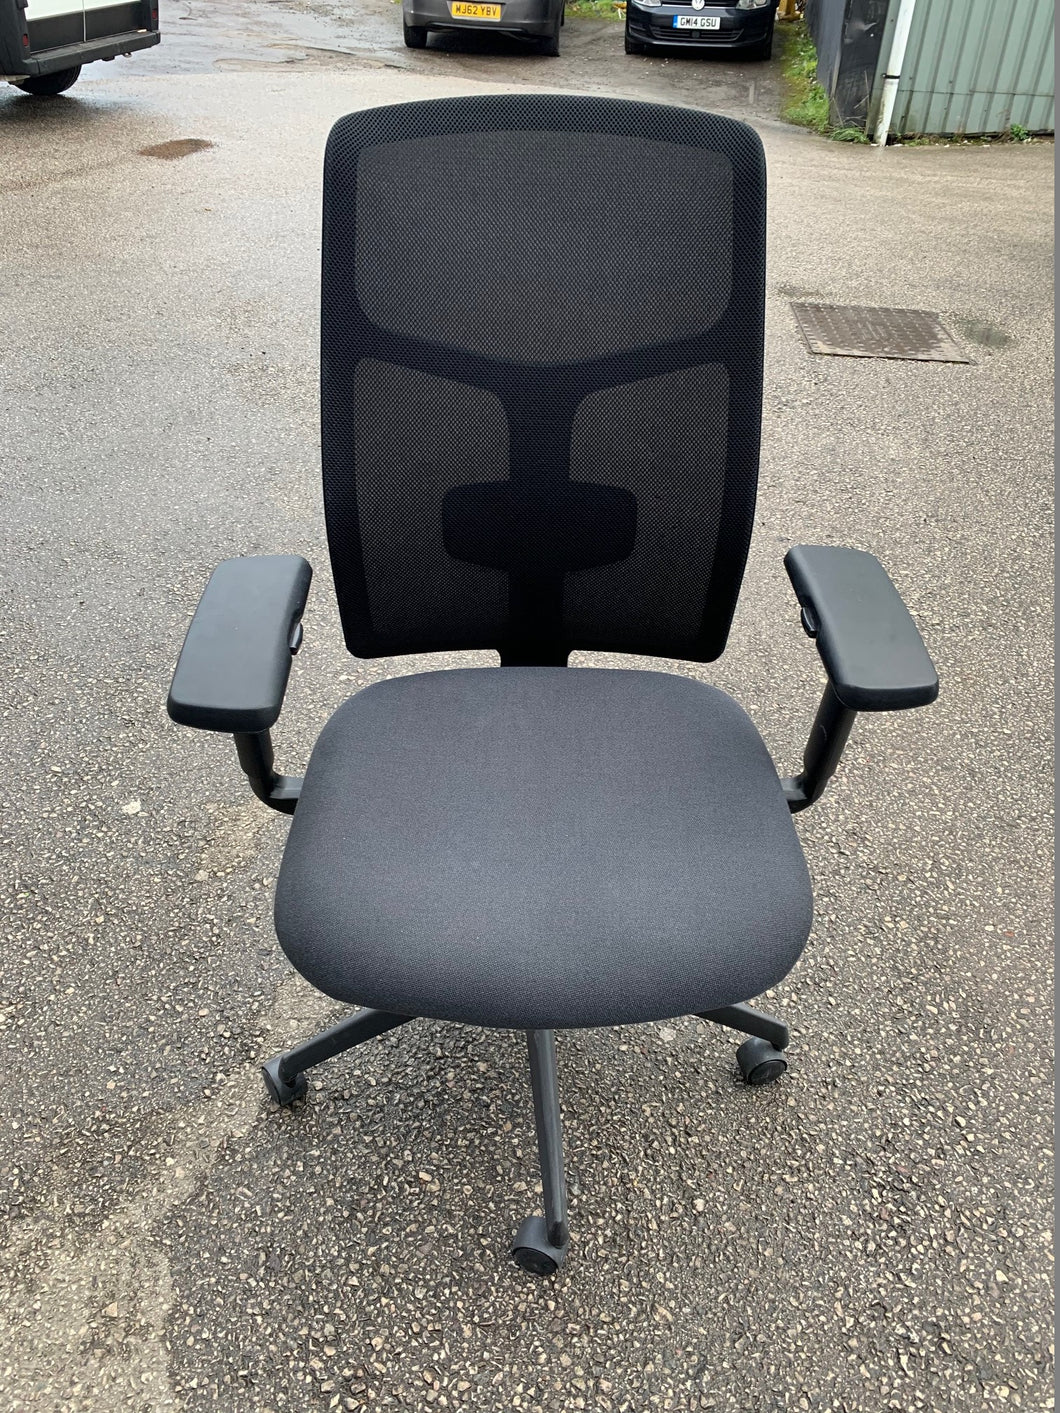 Boss Design Tauro Mesh Back Office Chair - Flogit2us.com